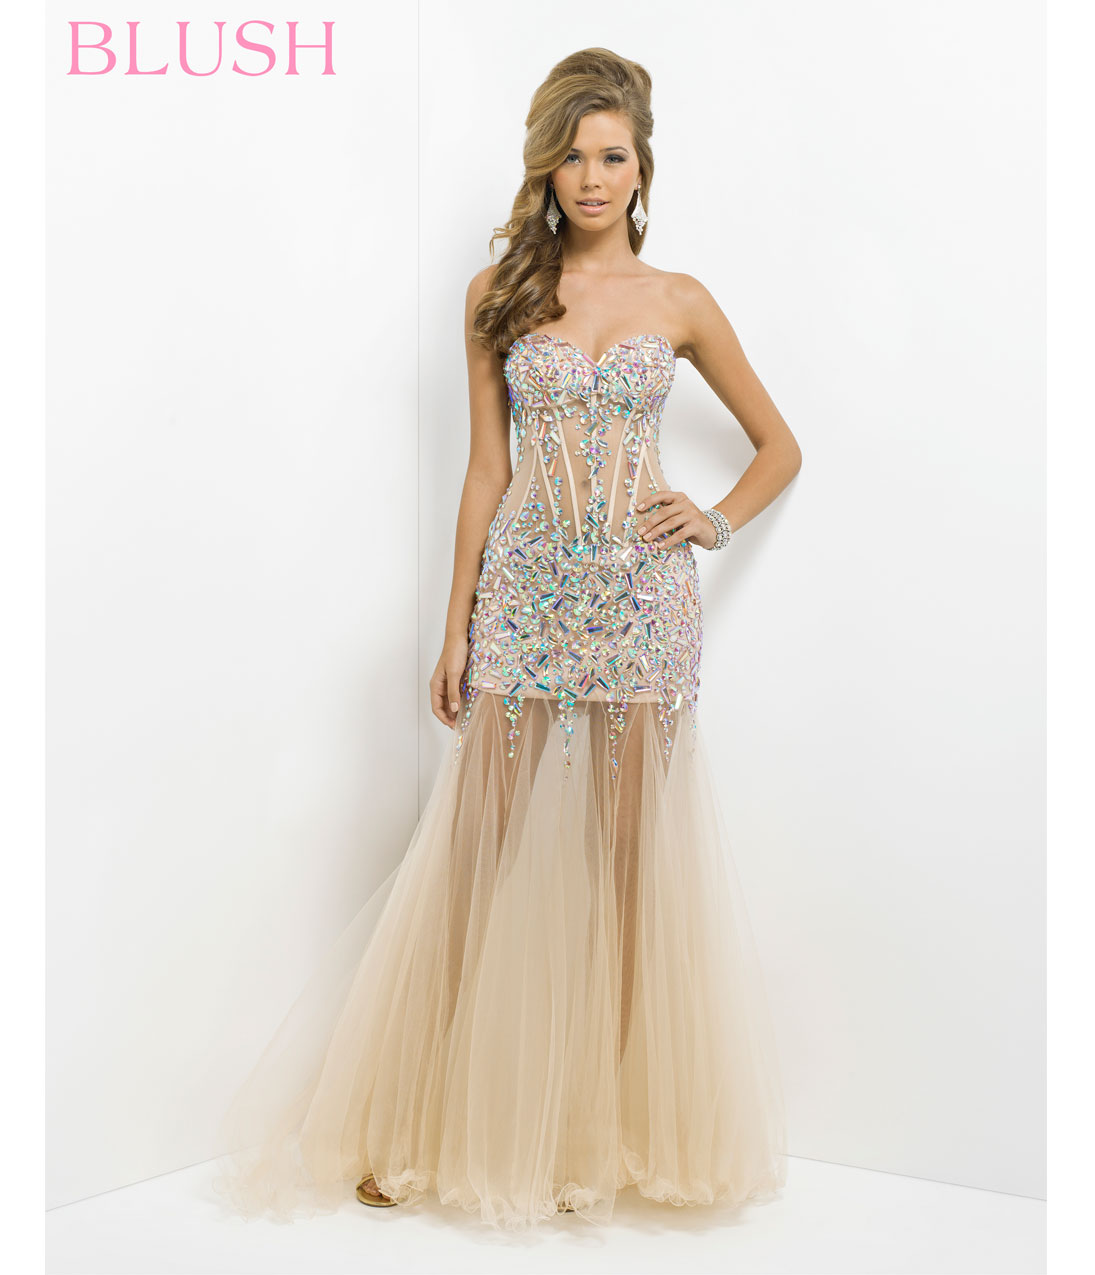 Blush 2014 Prom Dresses - Pink & Nude Sheer Sexy Prom Dress - Unique Vintage - Prom dresses, retro dresses, retro swimsuits.